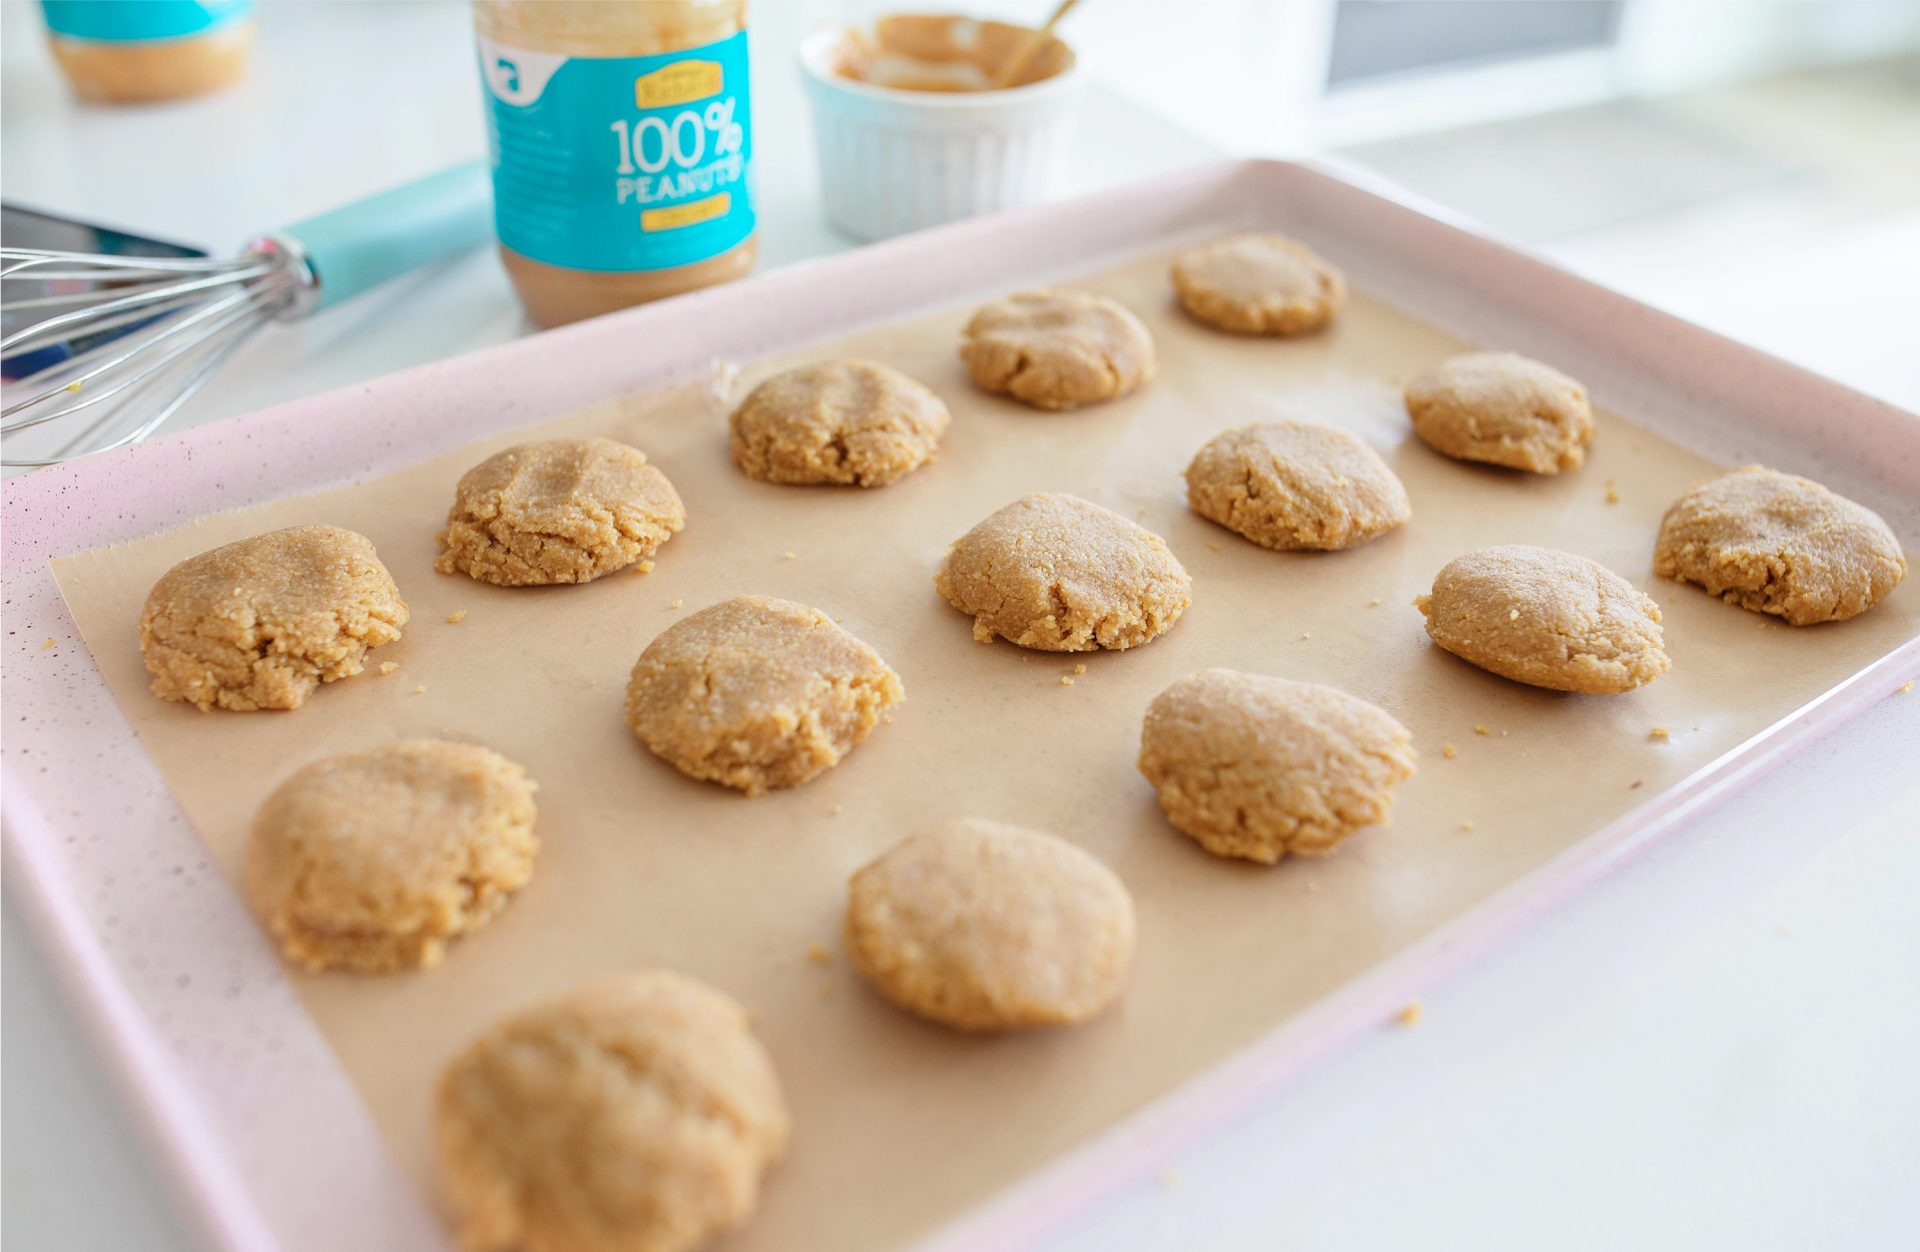 peanut butter cookies, healthy, keto, pb cookies, low carb, low carb cookies, peanut butter dessert, keto, diabetic-friendly, gluten-free, dairy-free, keto diet, healthy snack, sugar free, no added sugar